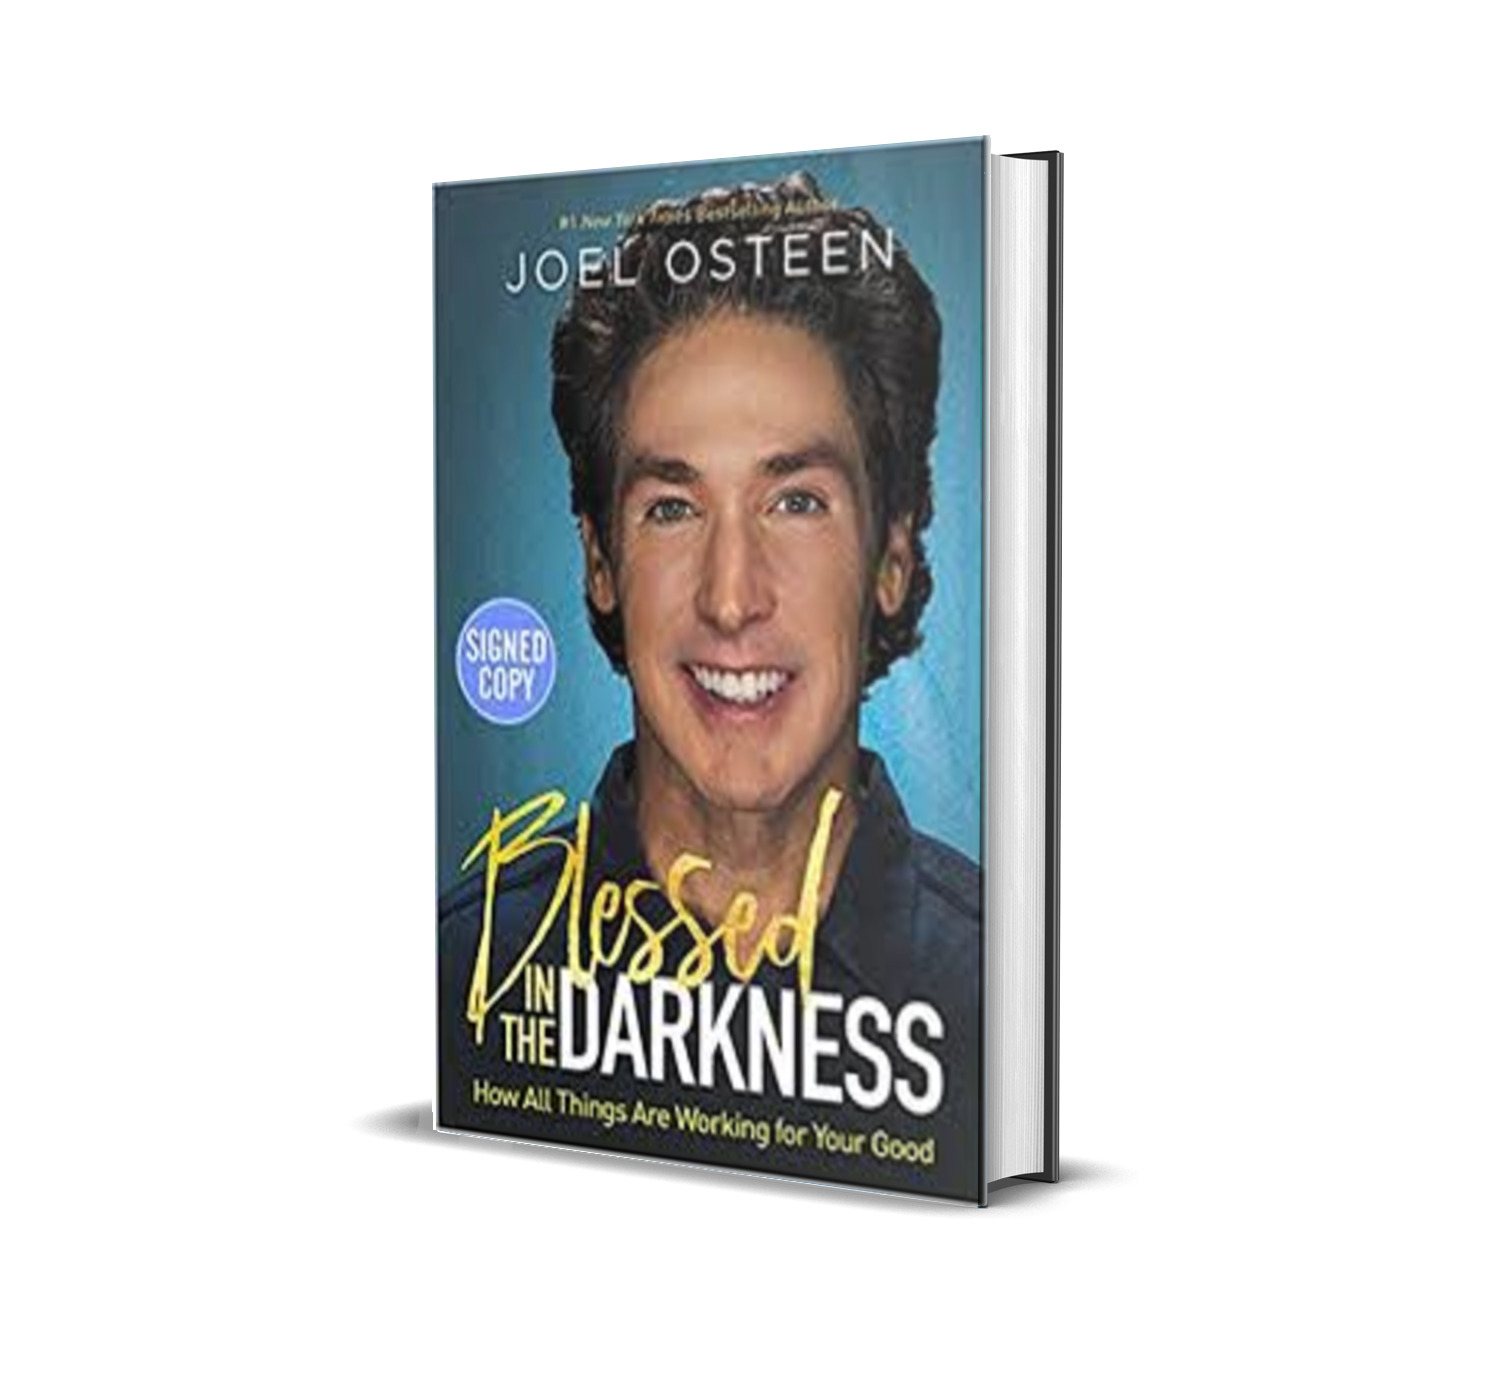 Blessed in the Darkness - Joel Osteen